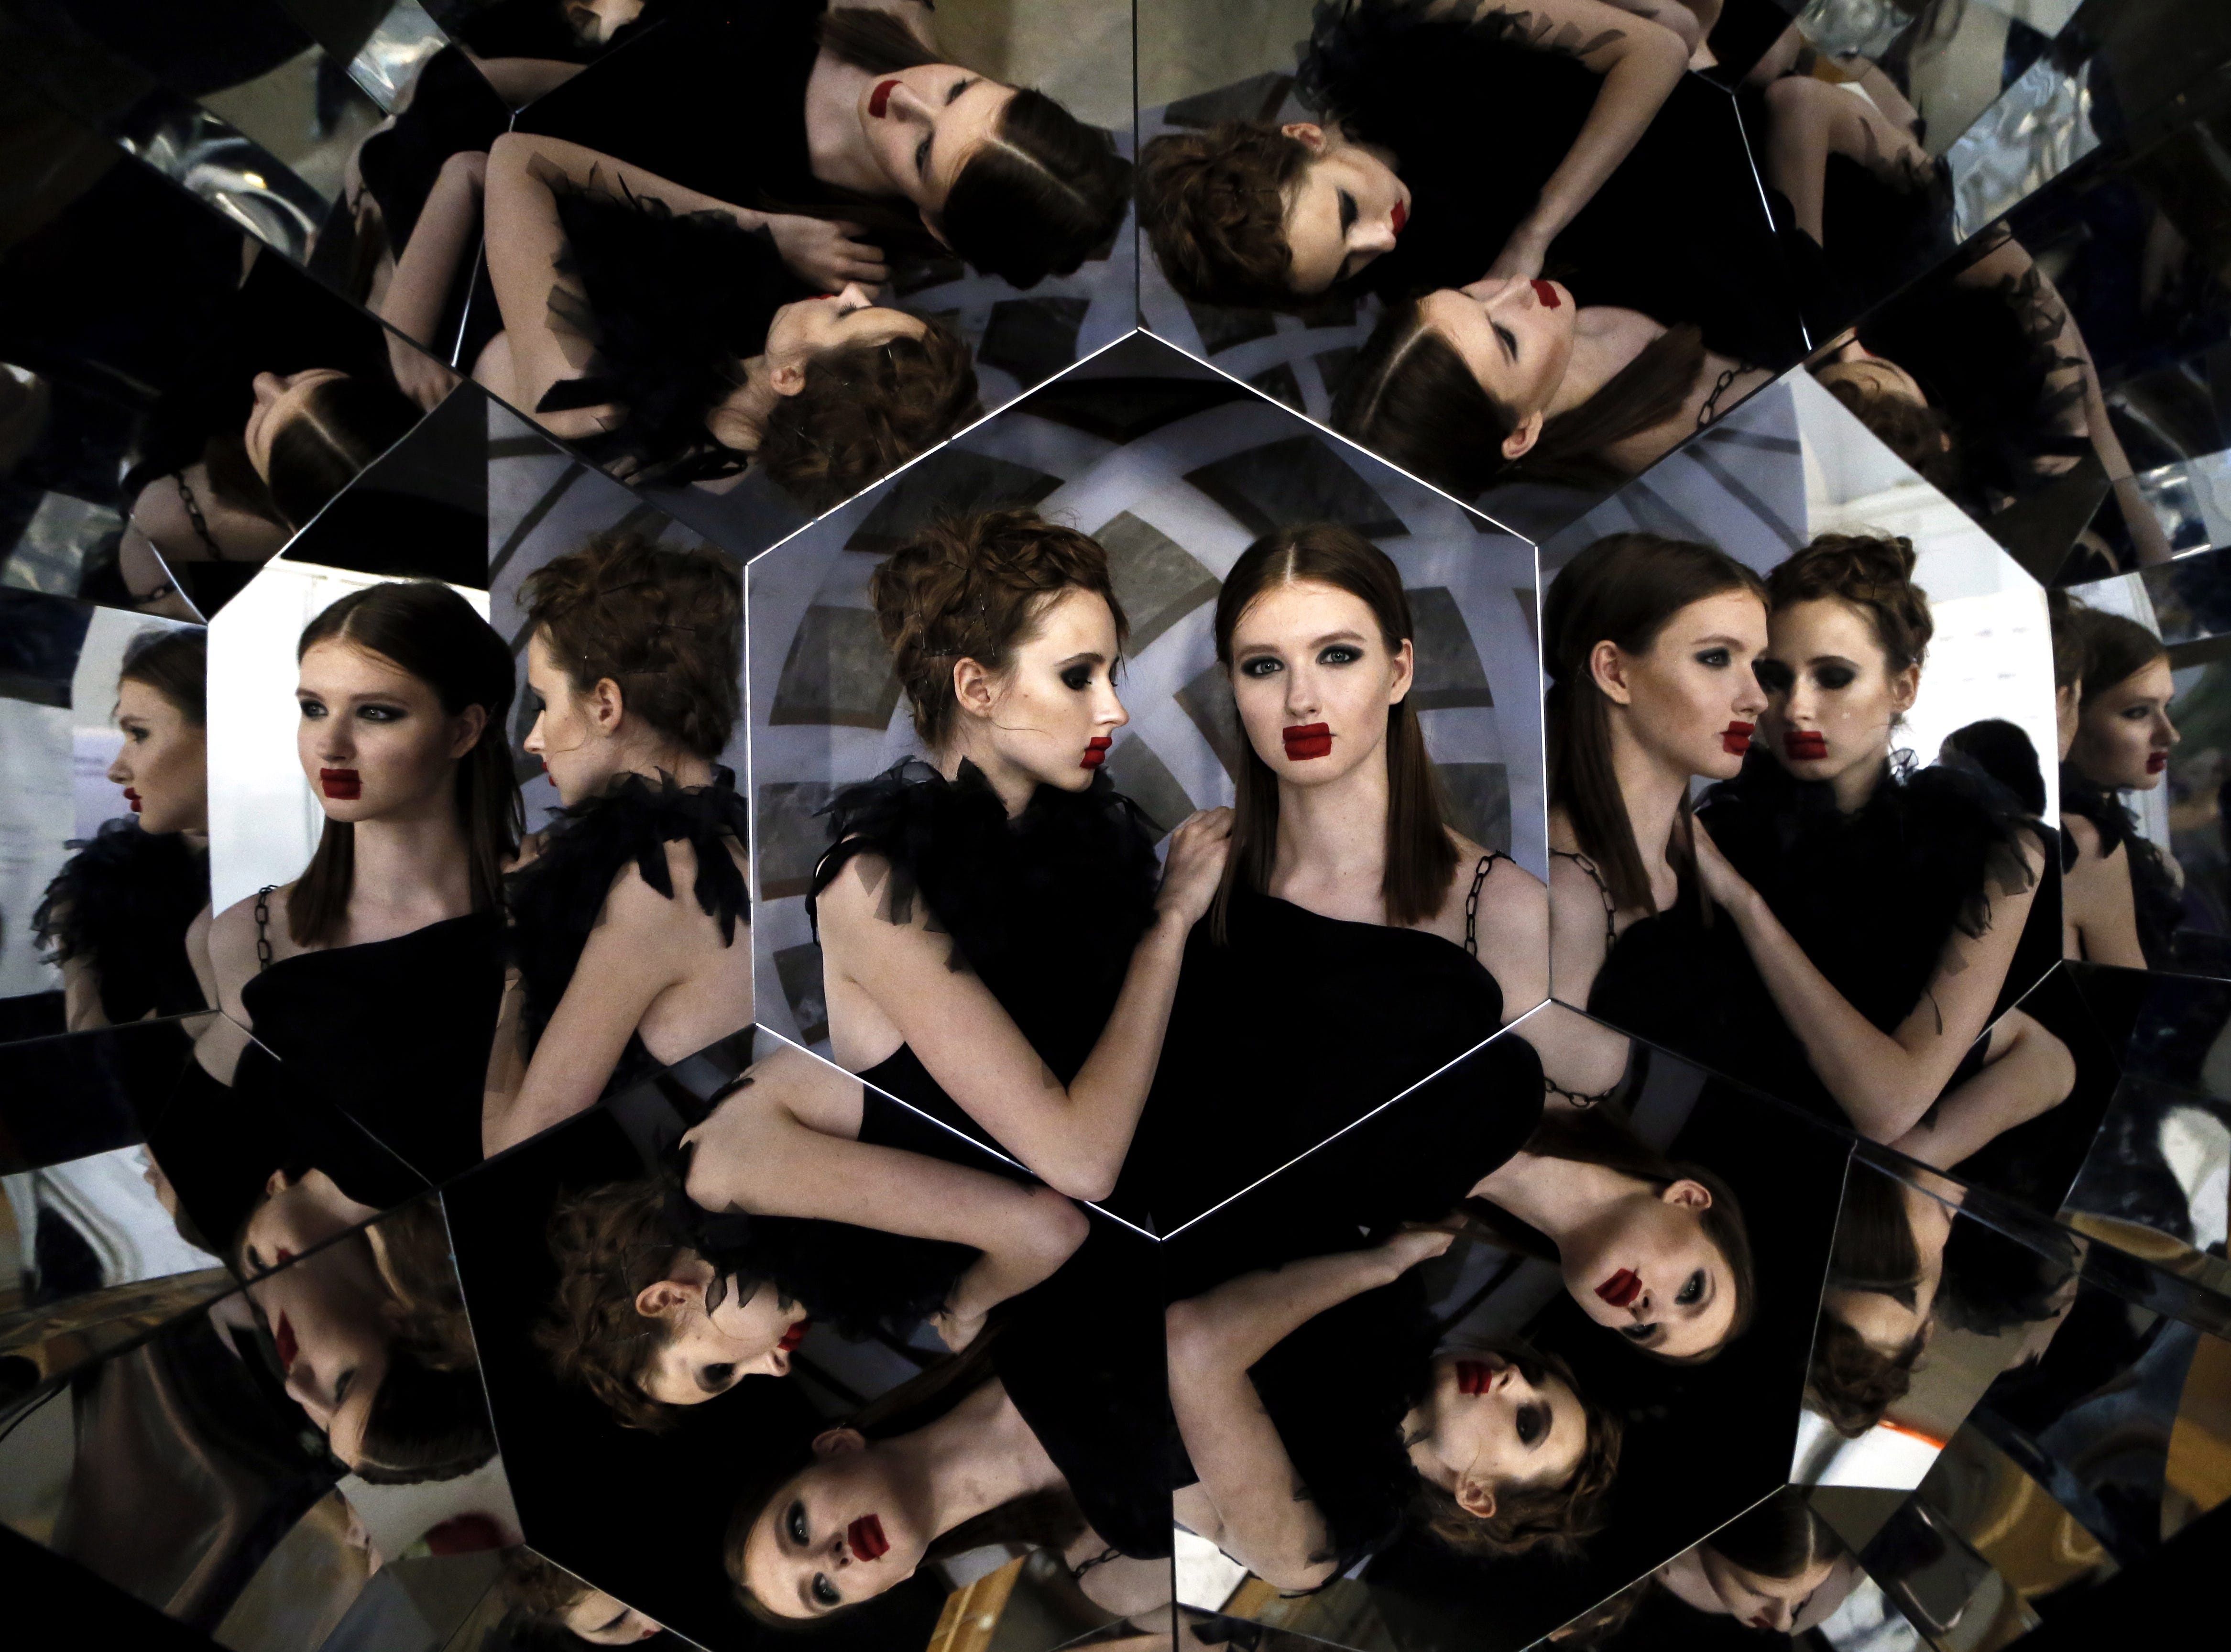 March 12, 2018: Models pose for a selfie in a mirror hexagon backstage during the Mercedes-Benz Fashion Week Russia in Moscow.